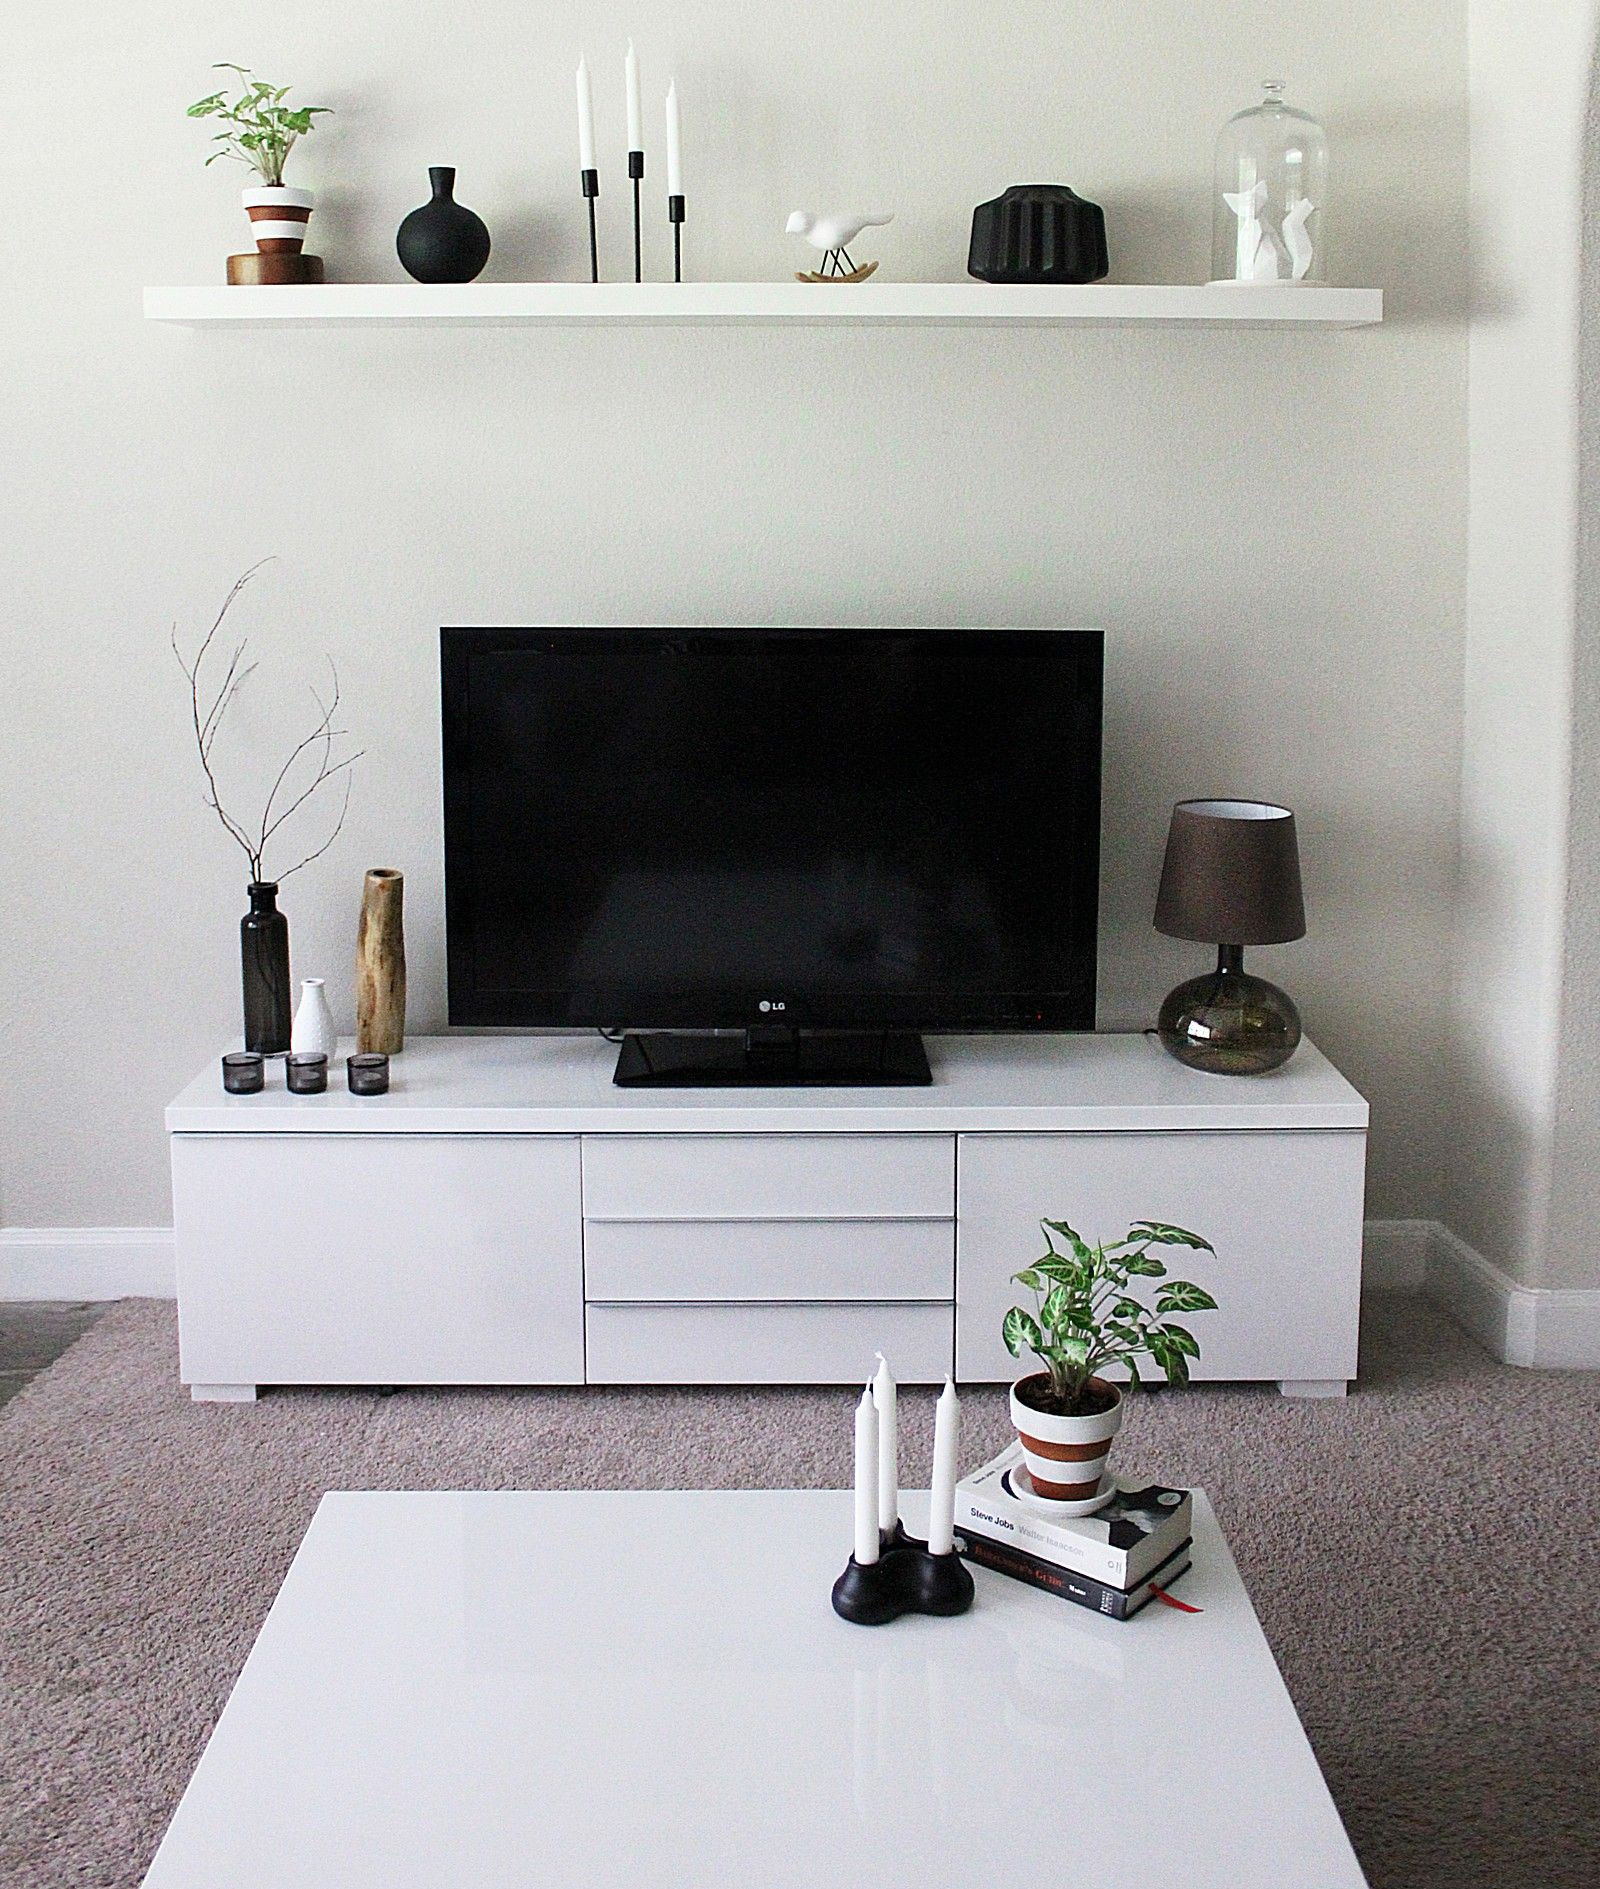 Best ideas about Tv Stand Ideas For Living Room . Save or Pin Minimalist TV Stand and Cabinet IKEA Besta Now.